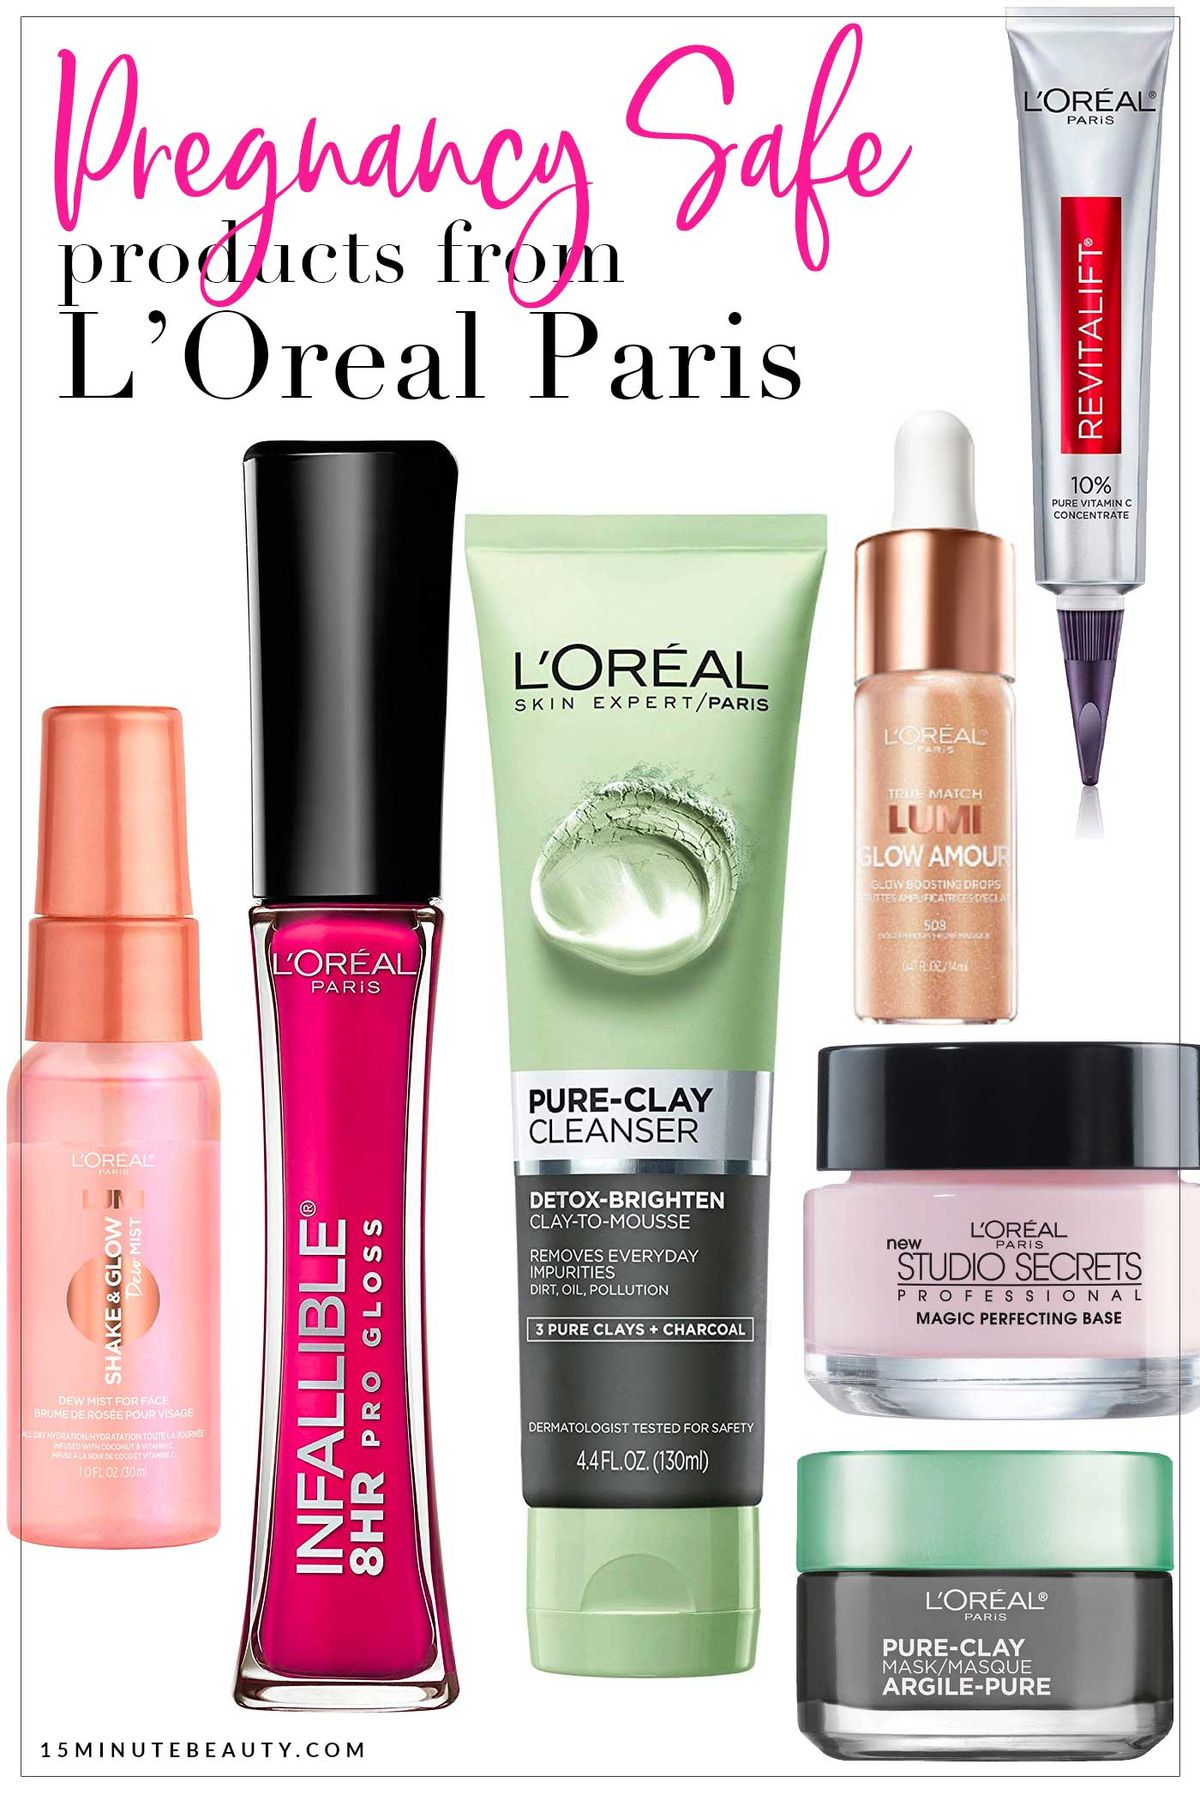 Pregnancy Safe Skincare and makeup from L'Oreal. Saving for later! No need to spend a ton of money to get products that are safe!